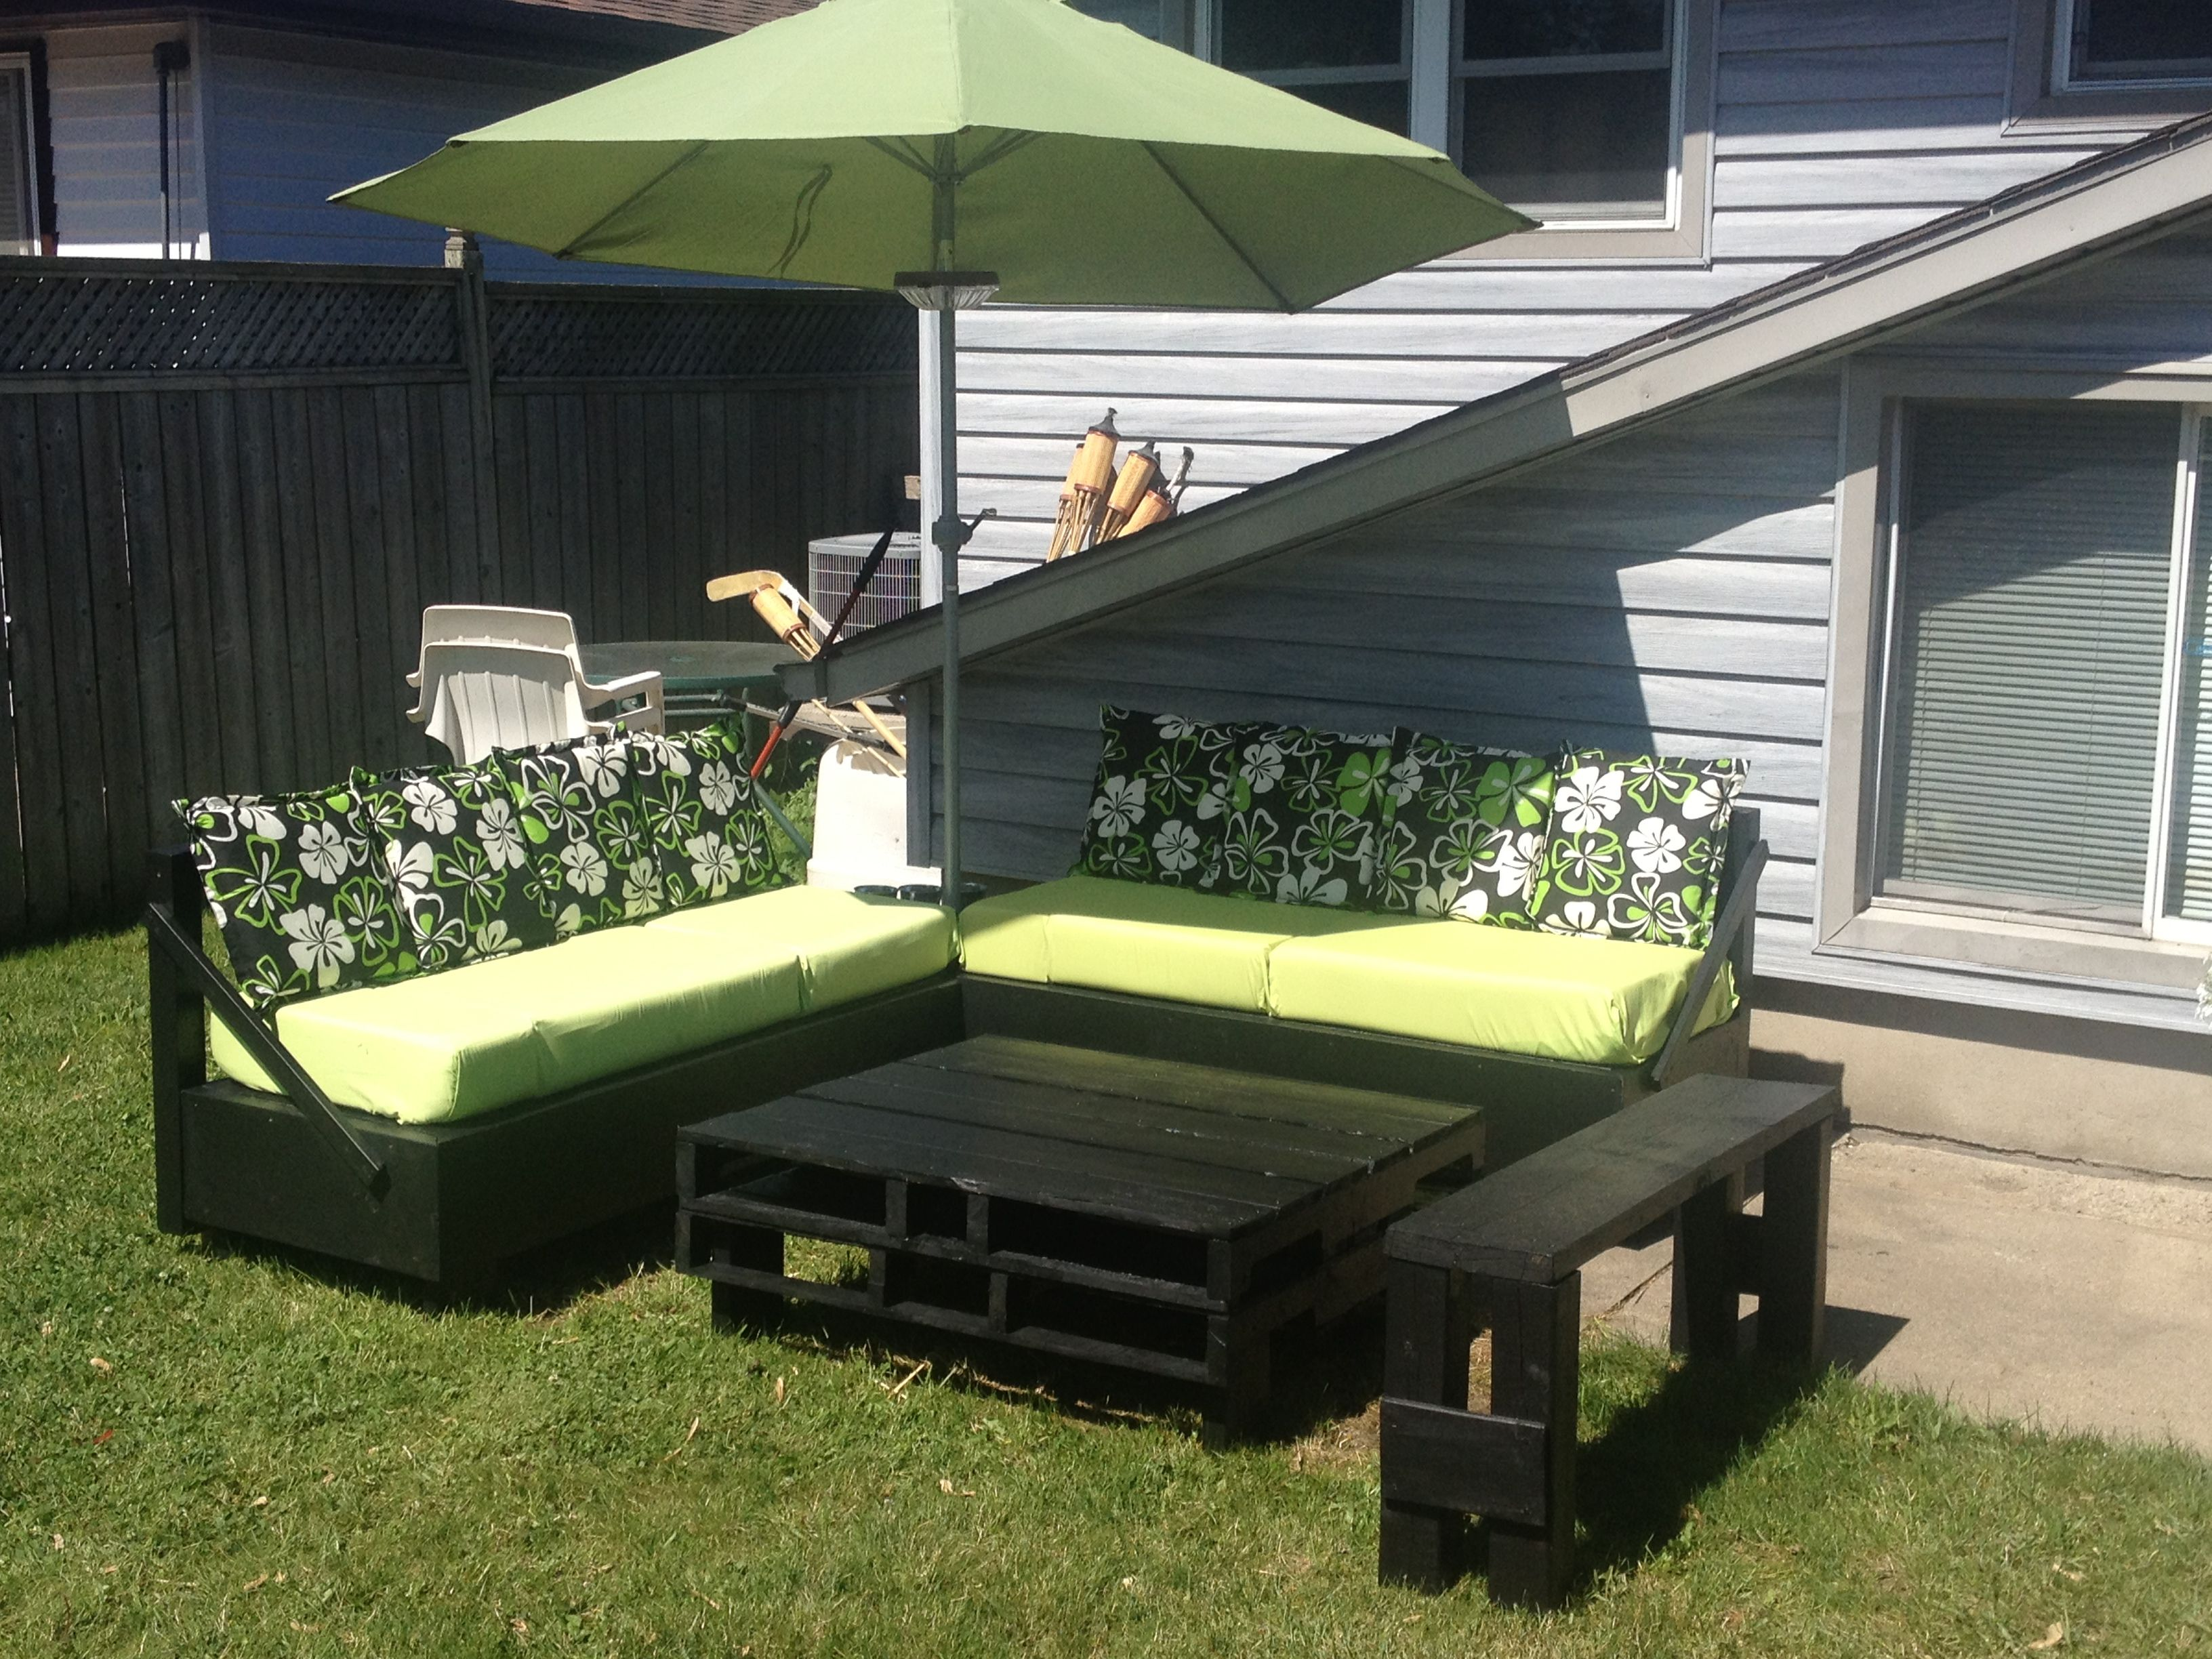 Homemade outdoor furniture ideas - Homemade Patio Furniture My Husband And I Made A Lot Of Work But Well